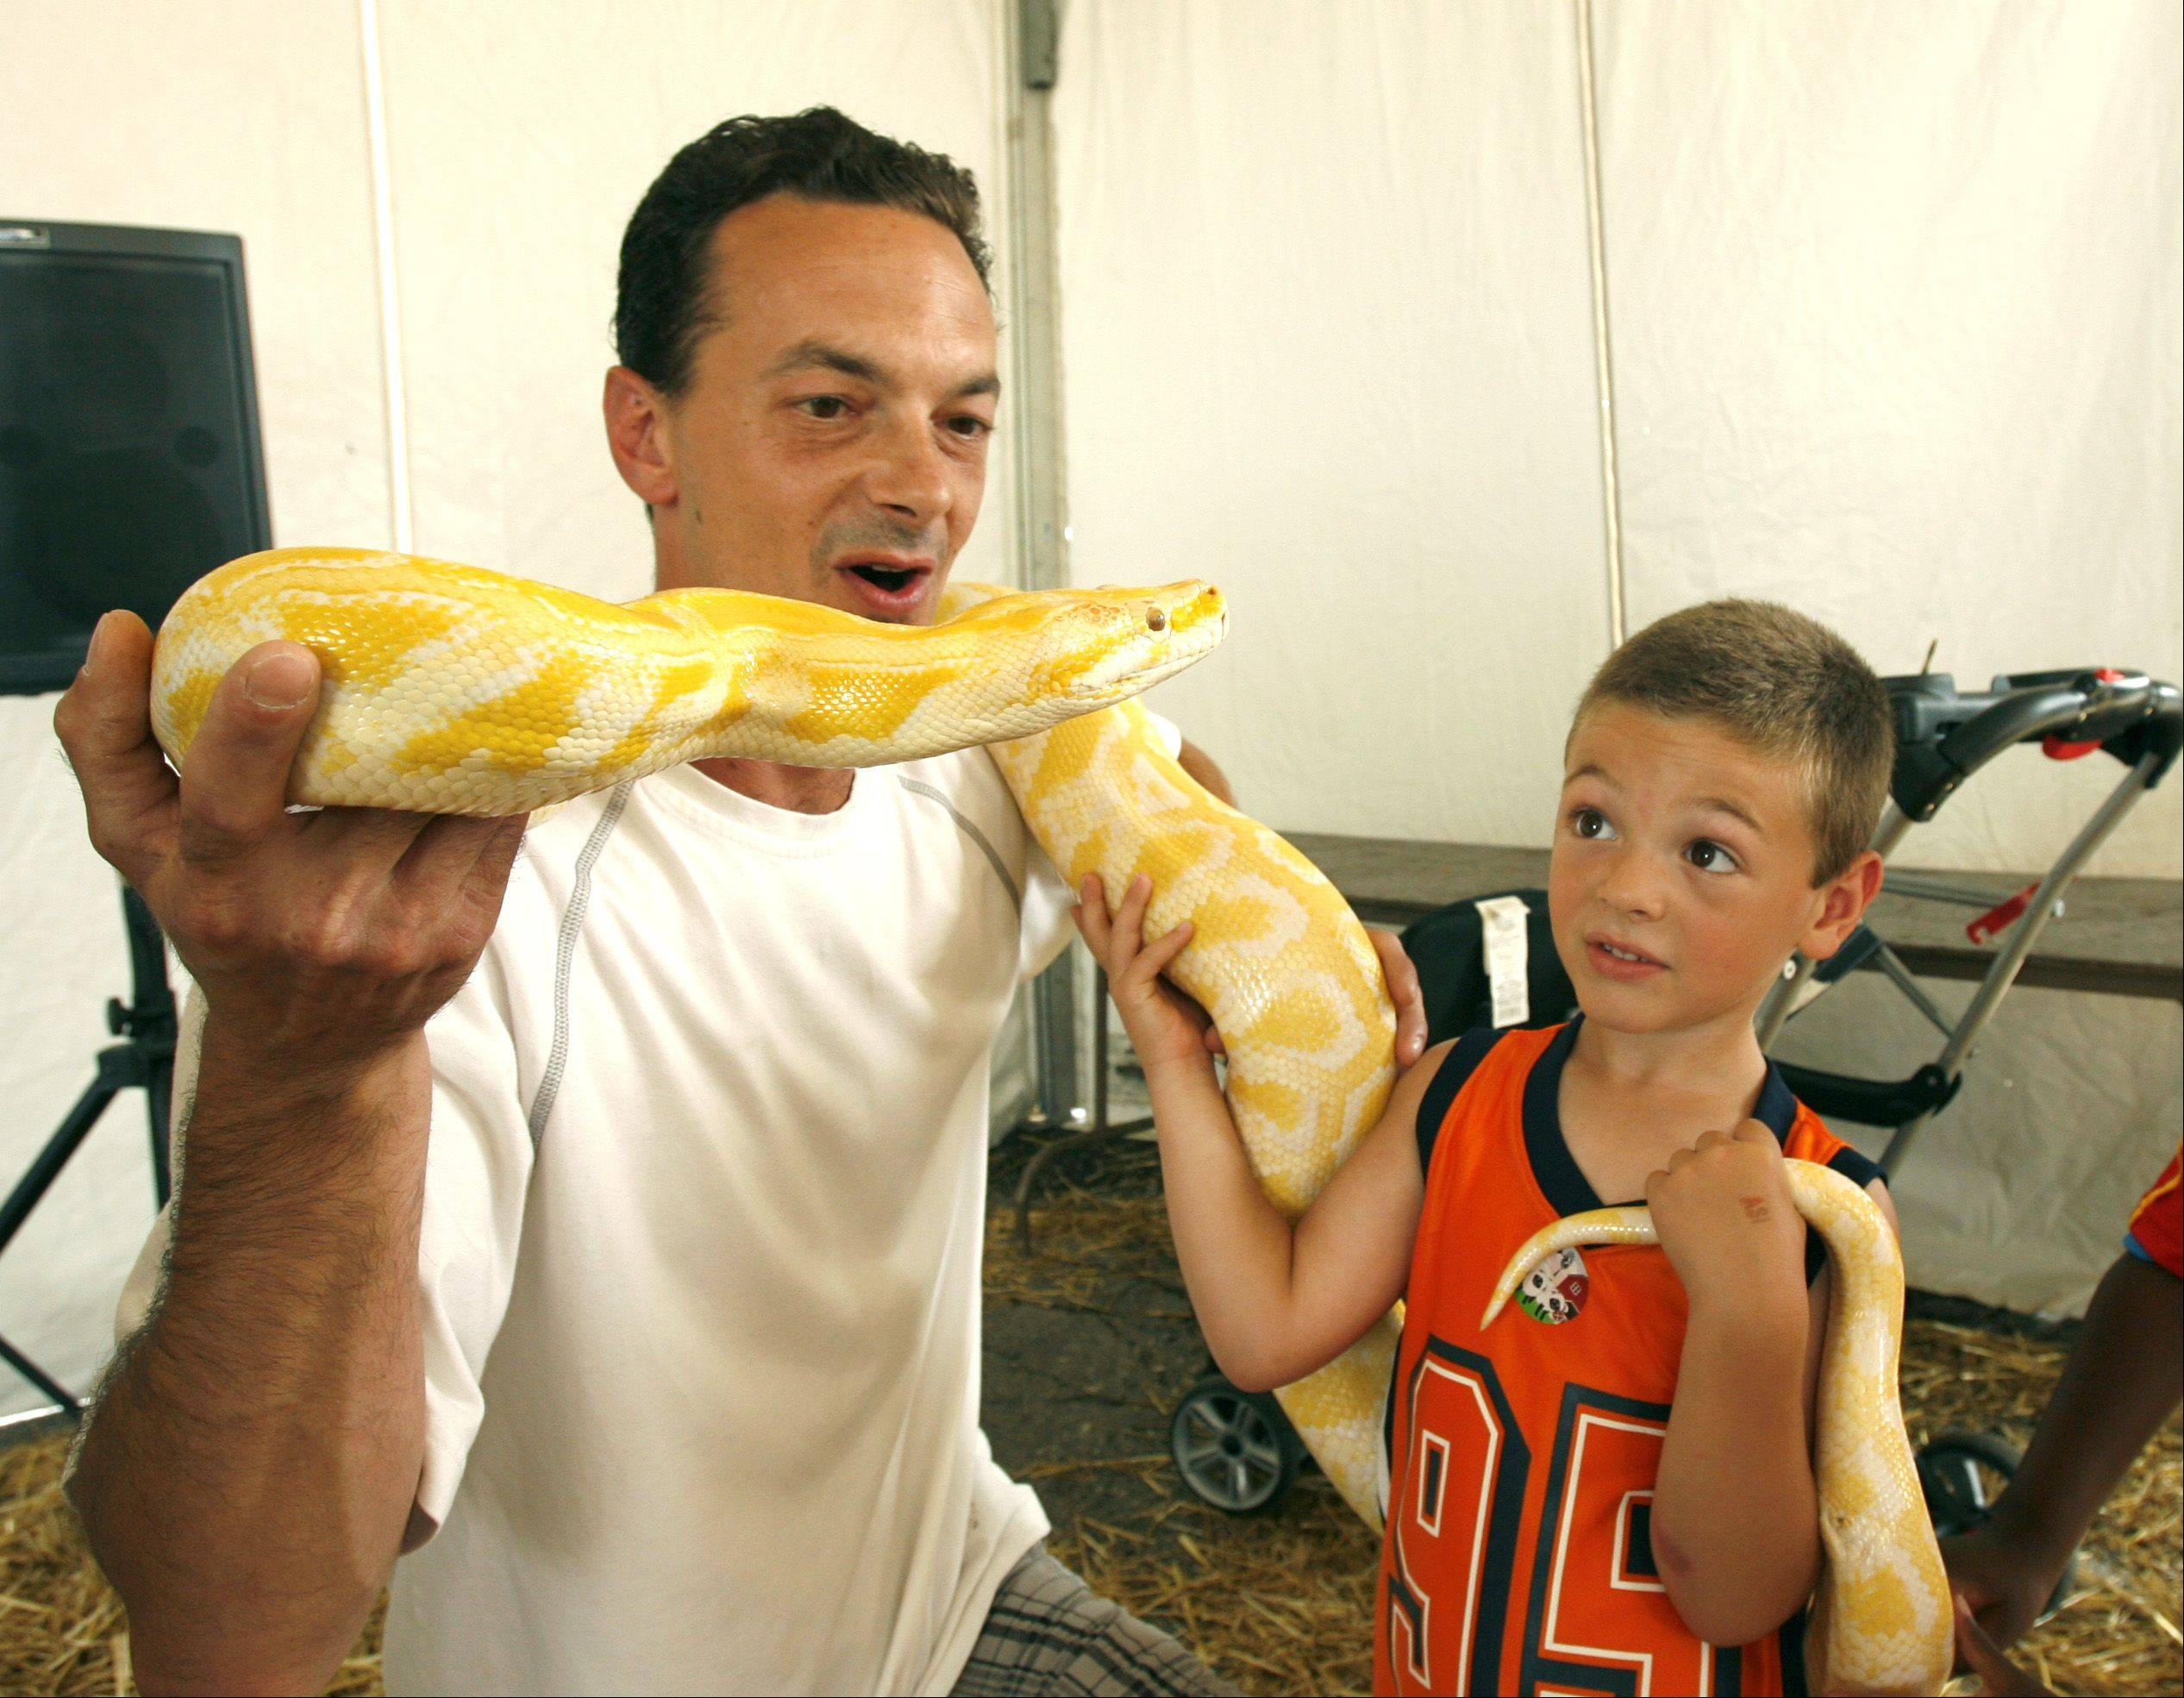 Tom Cecchin and his son Joey, 4, of Des Plaines get up close with a 3-year-old Albino Burmese Python during the first day of the DuPage County Fair. The snake was part of an exotic animal show in the fair's AgVentureland area.